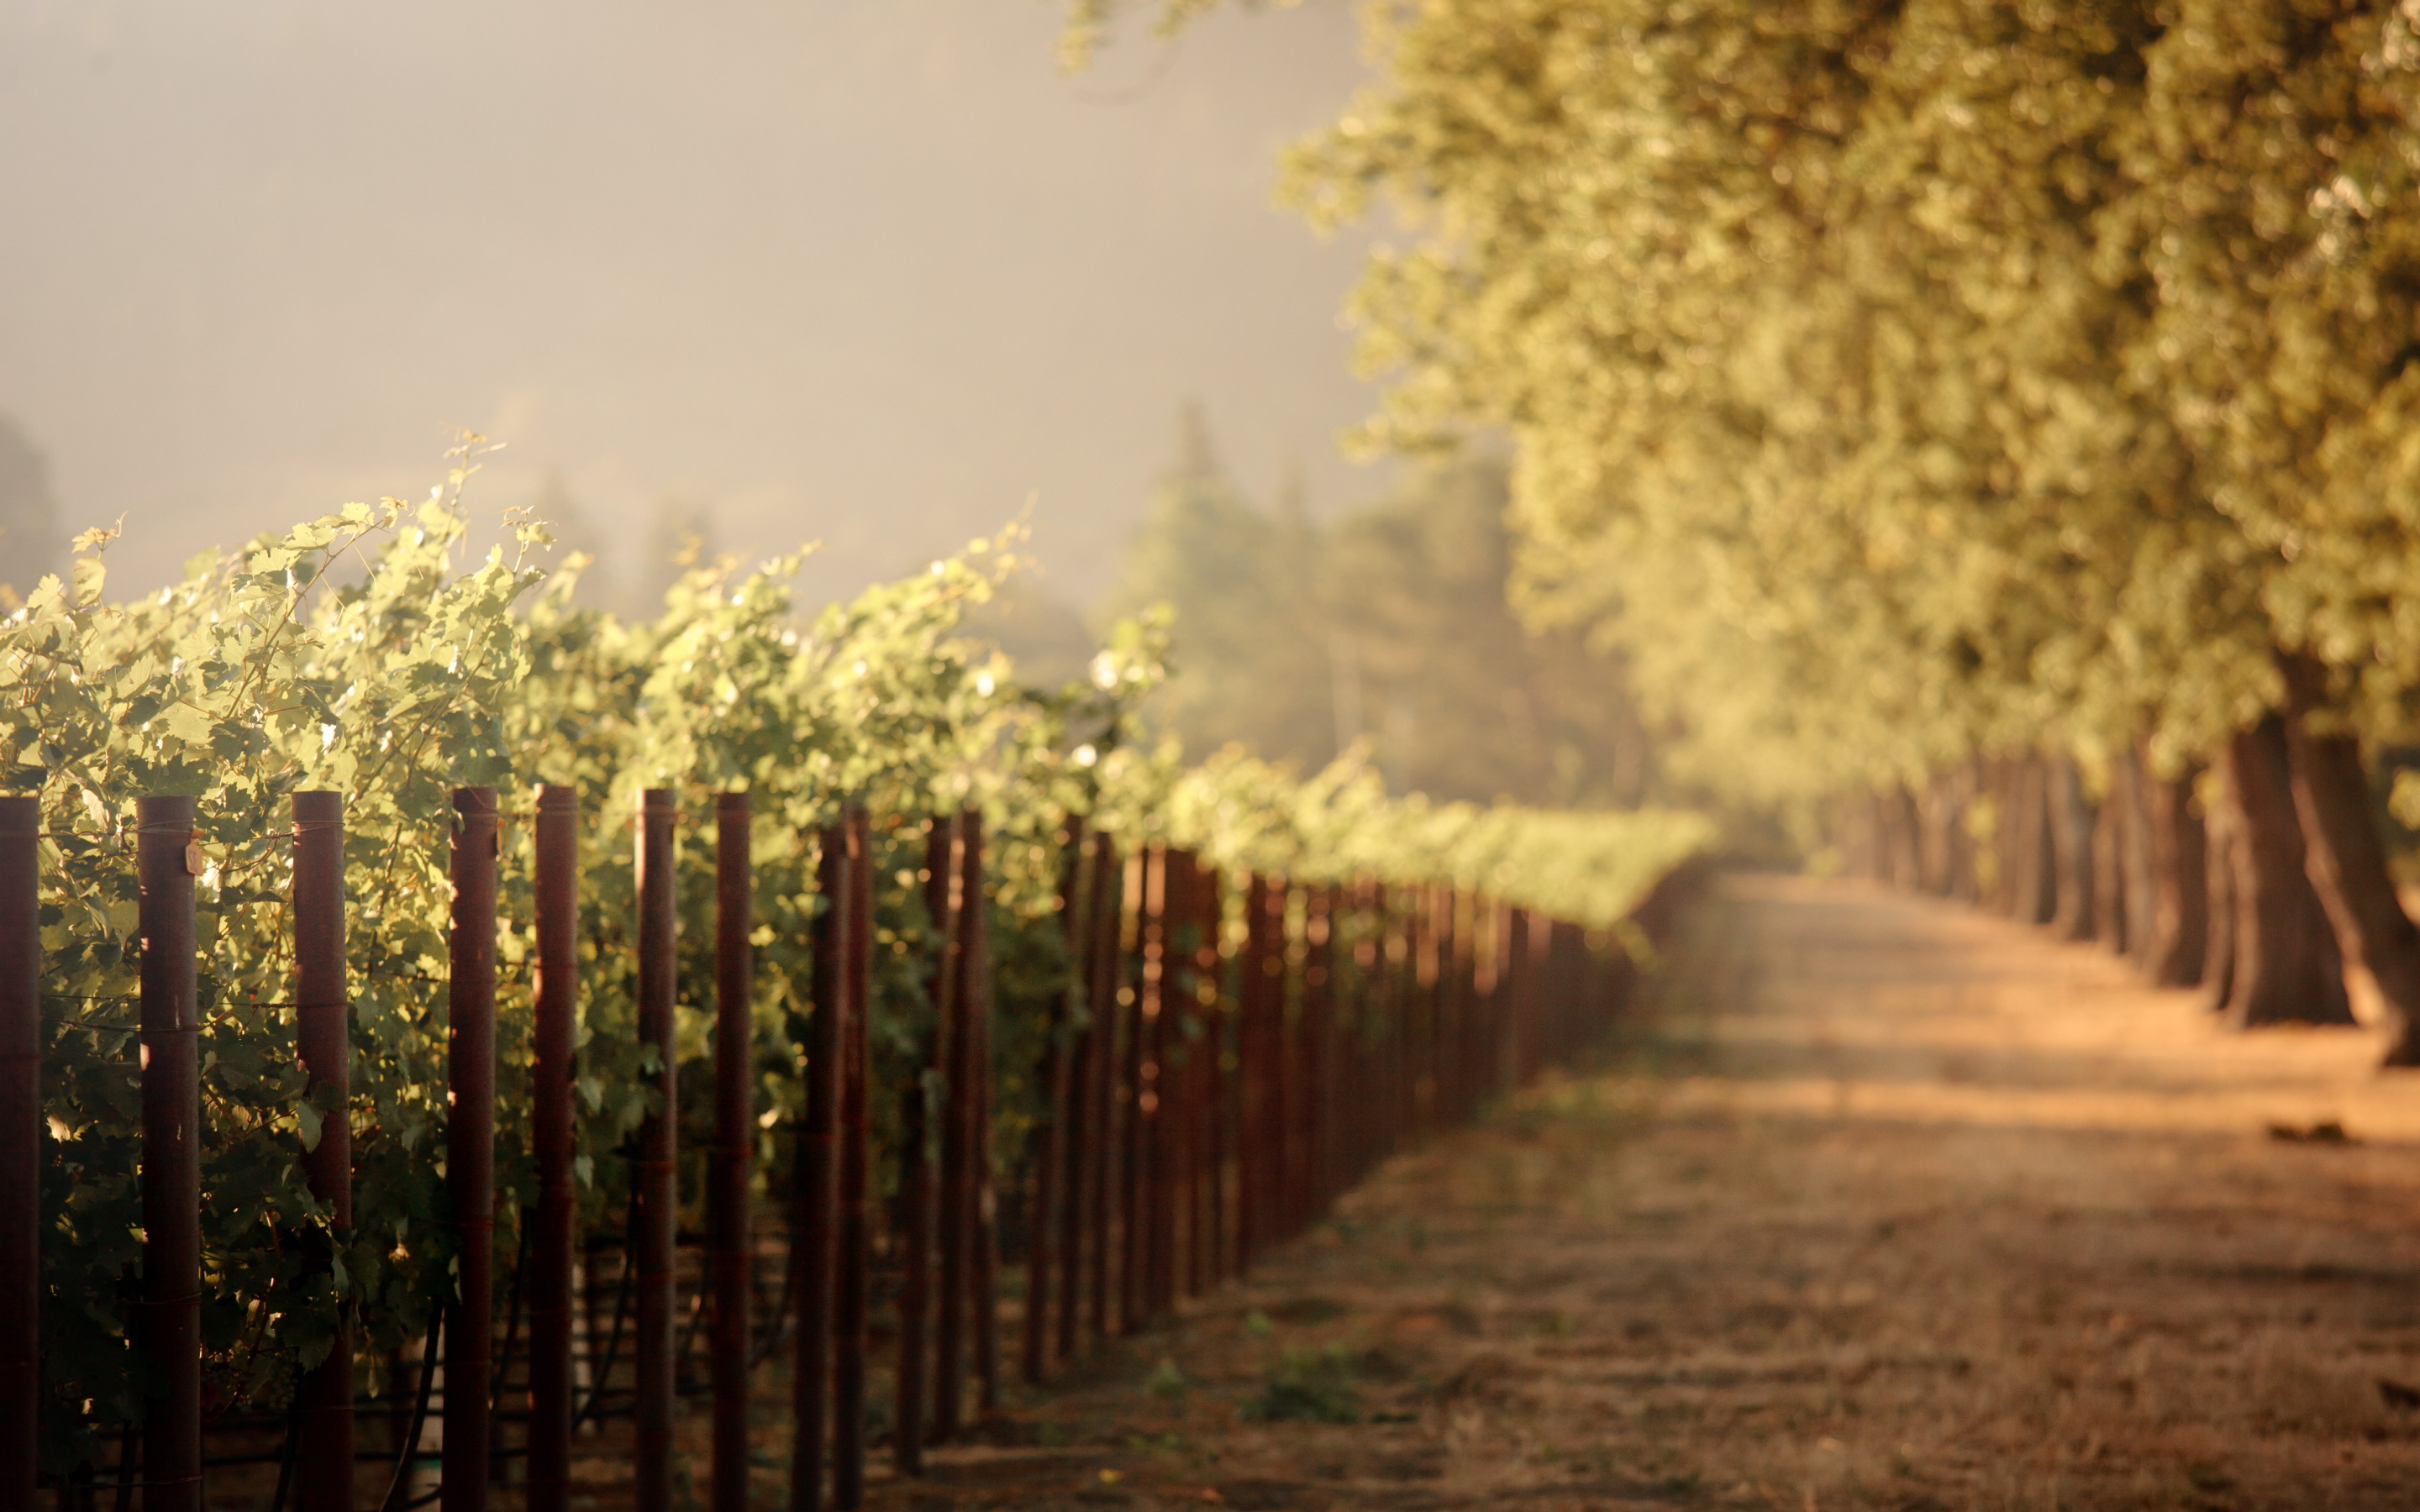 sunrise wallpaper vineyard